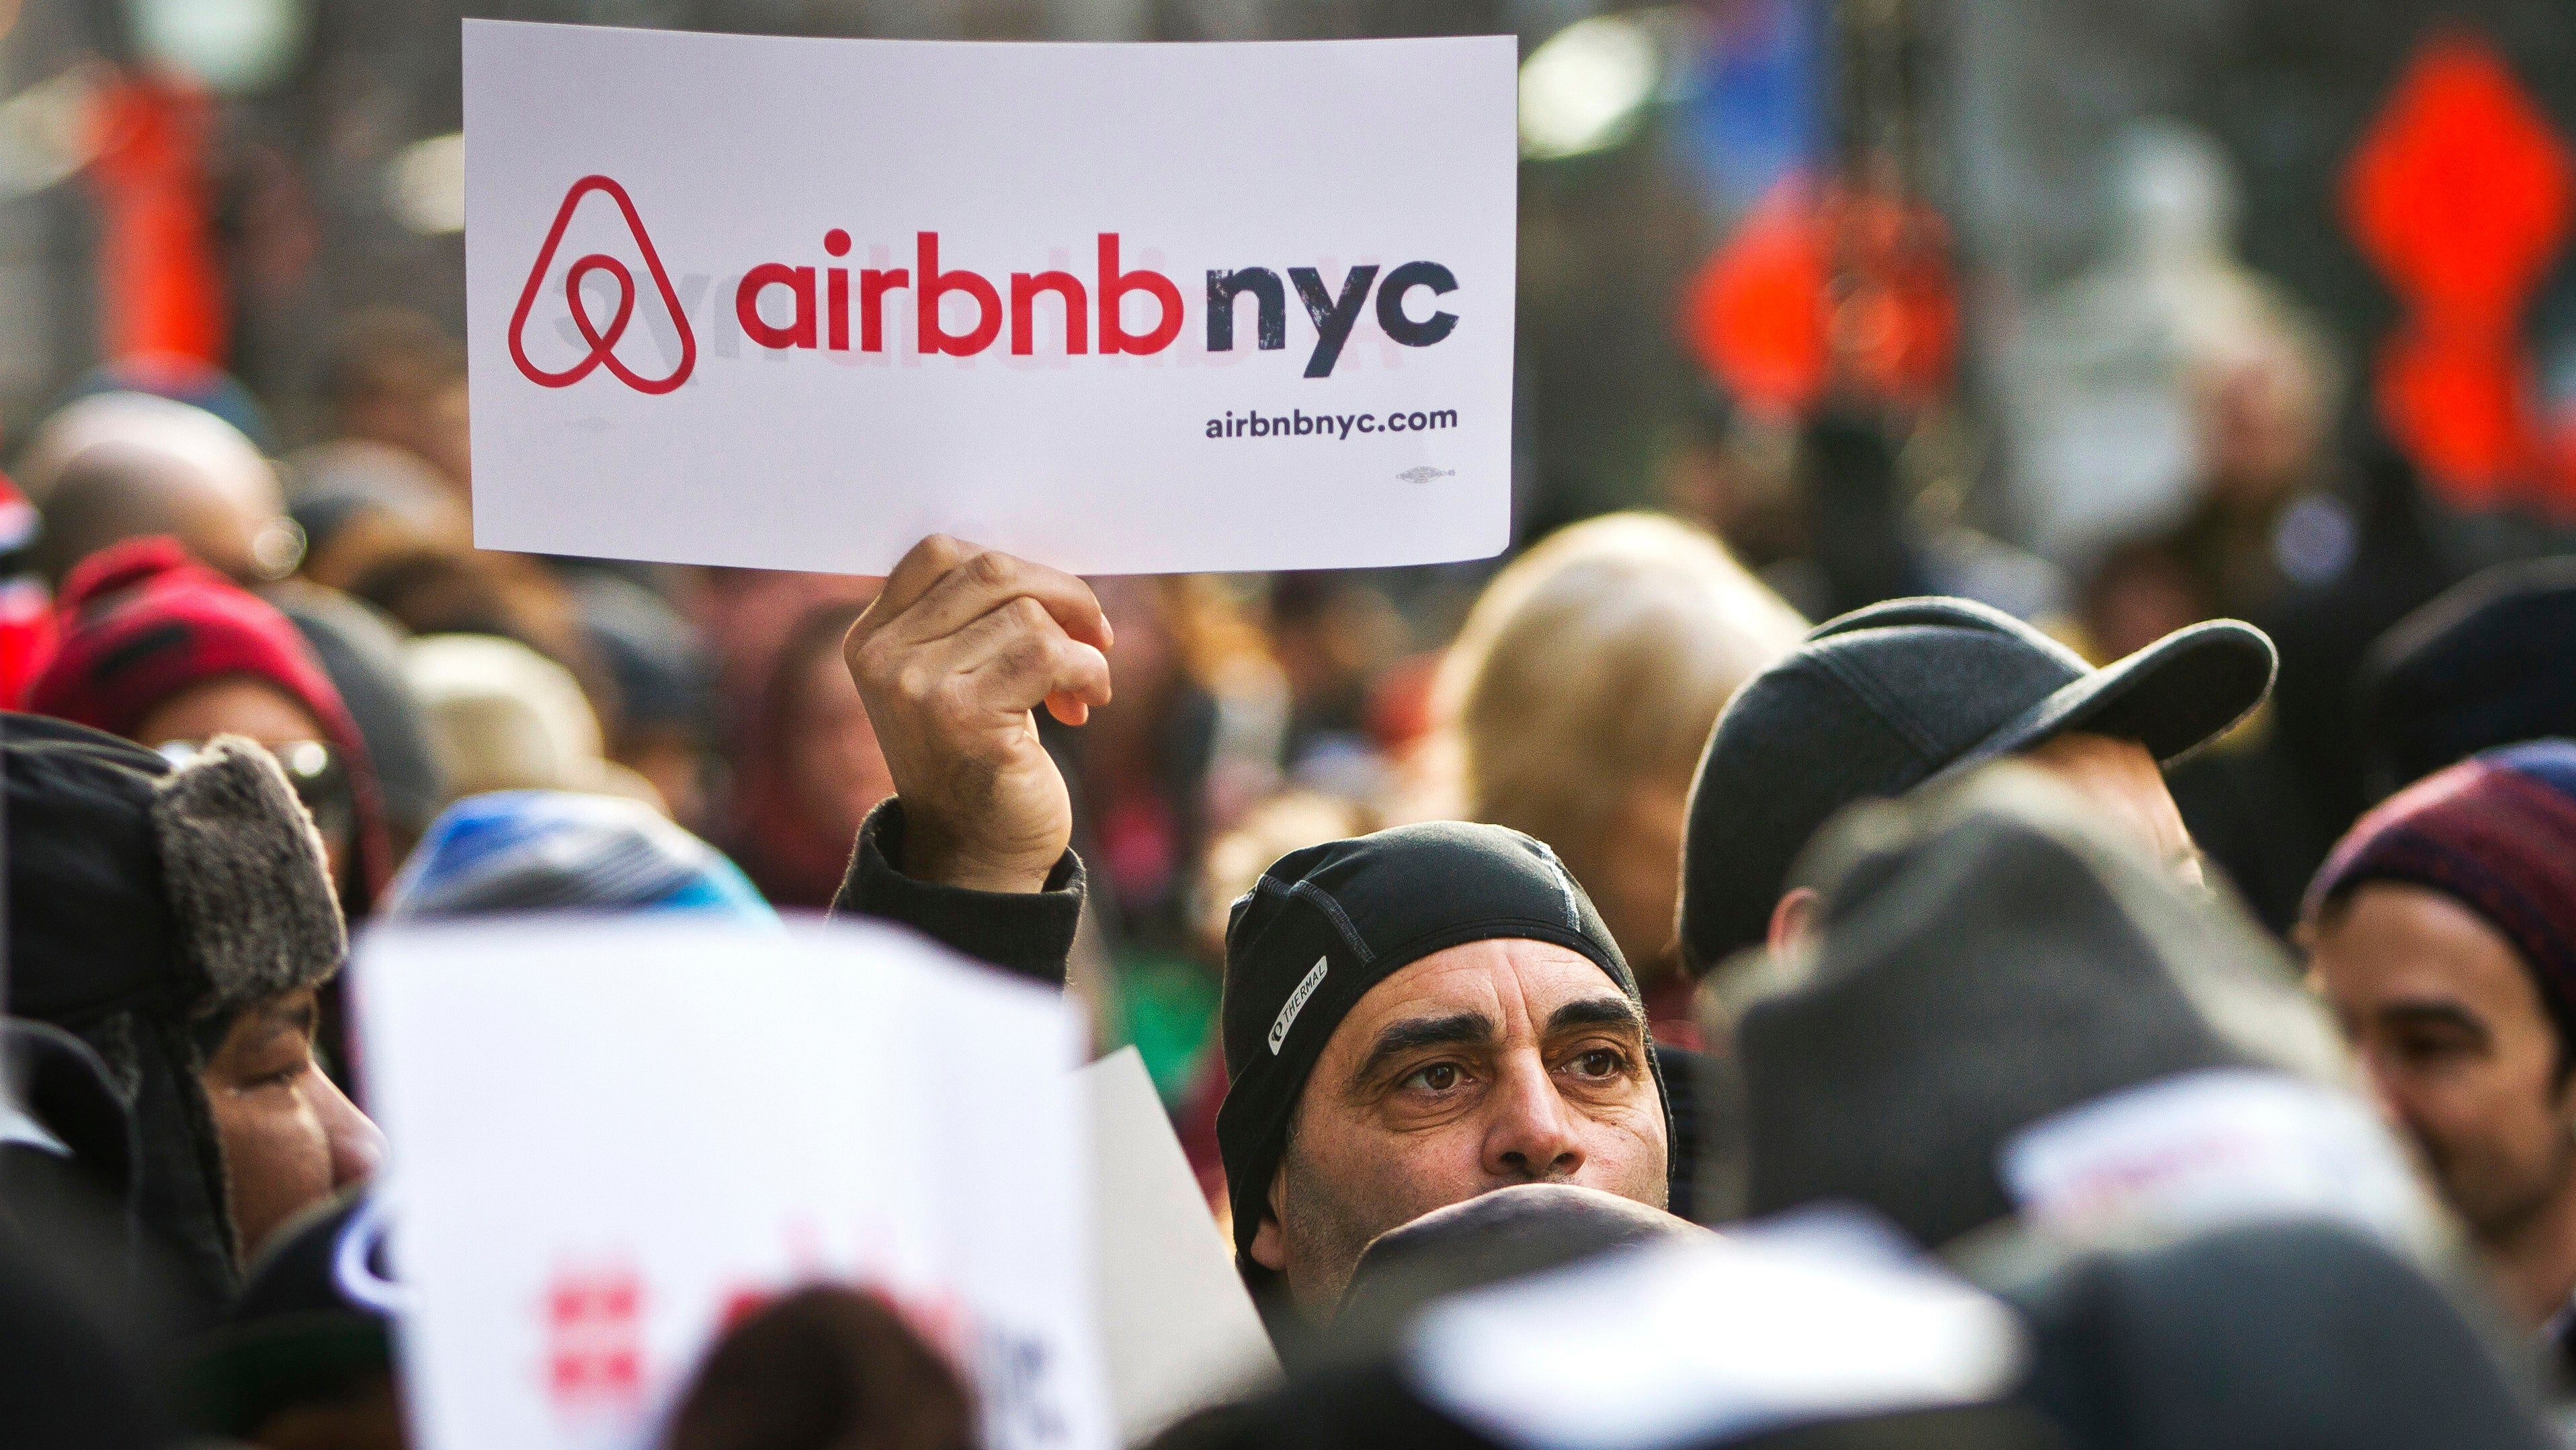 Report: New York Police Are Cracking Down On Small-Scale Airbnb Rentals